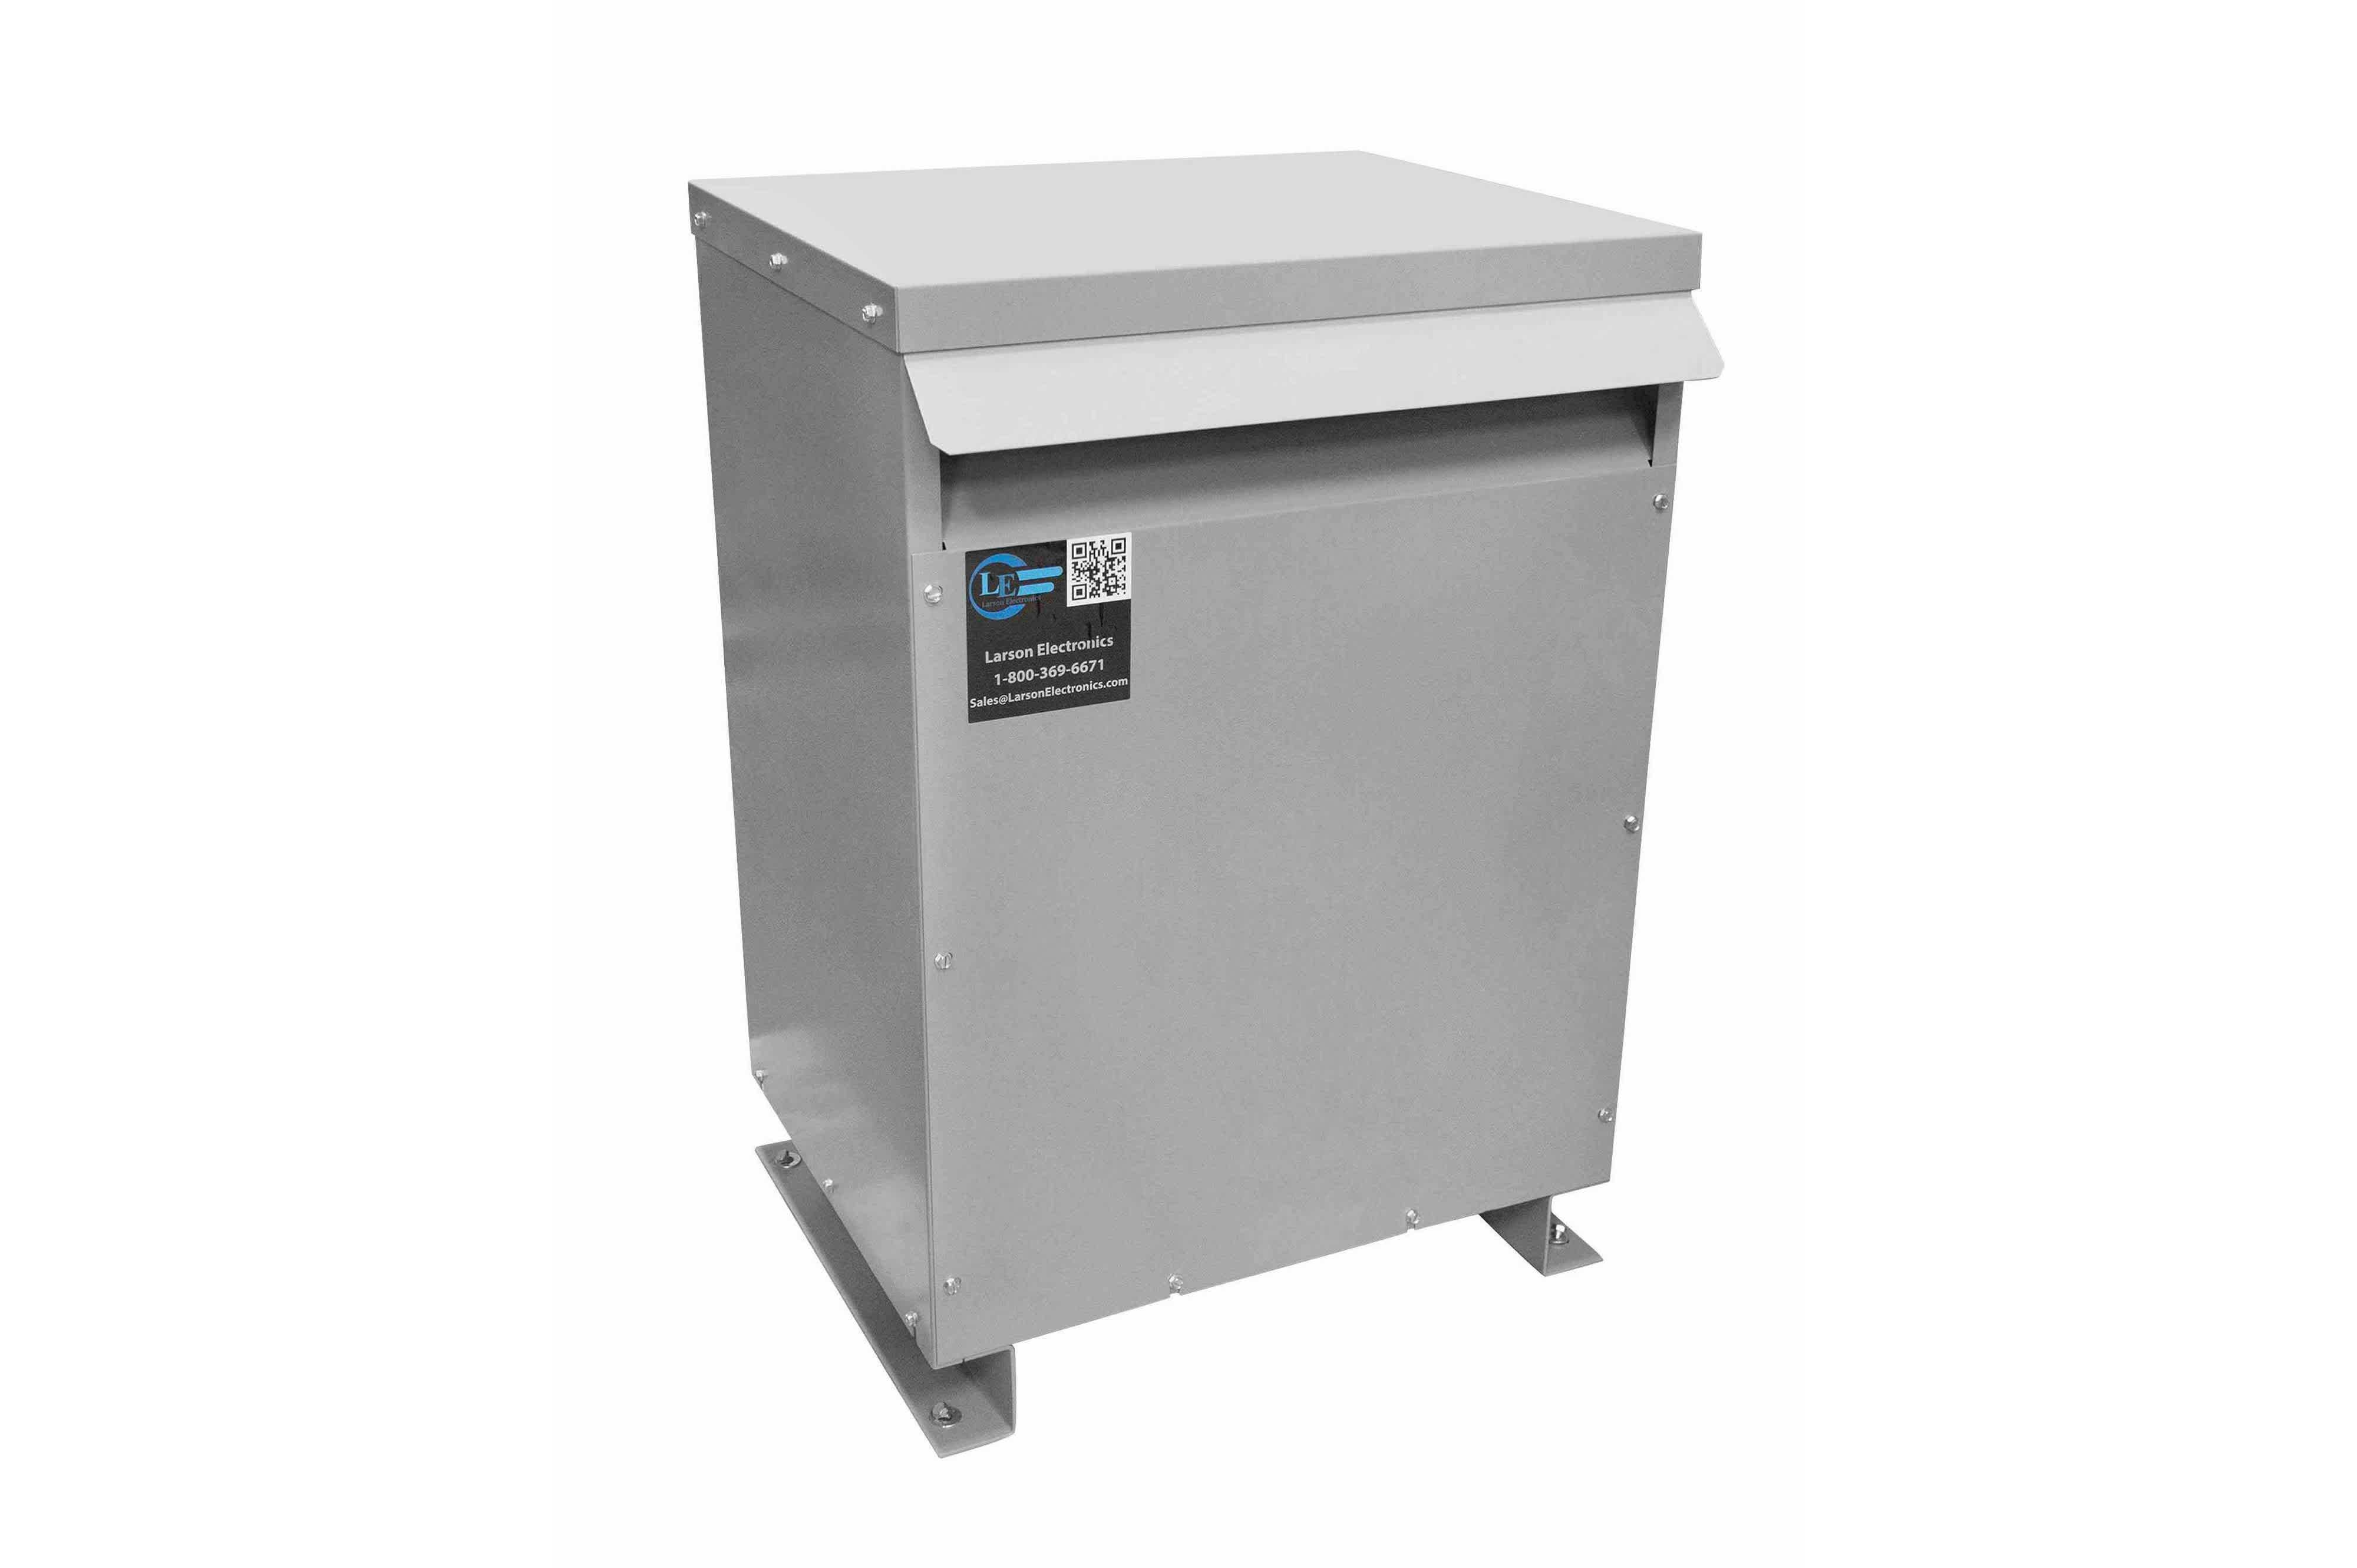 30 kVA 3PH Isolation Transformer, 480V Wye Primary, 575Y/332 Wye-N Secondary, N3R, Ventilated, 60 Hz